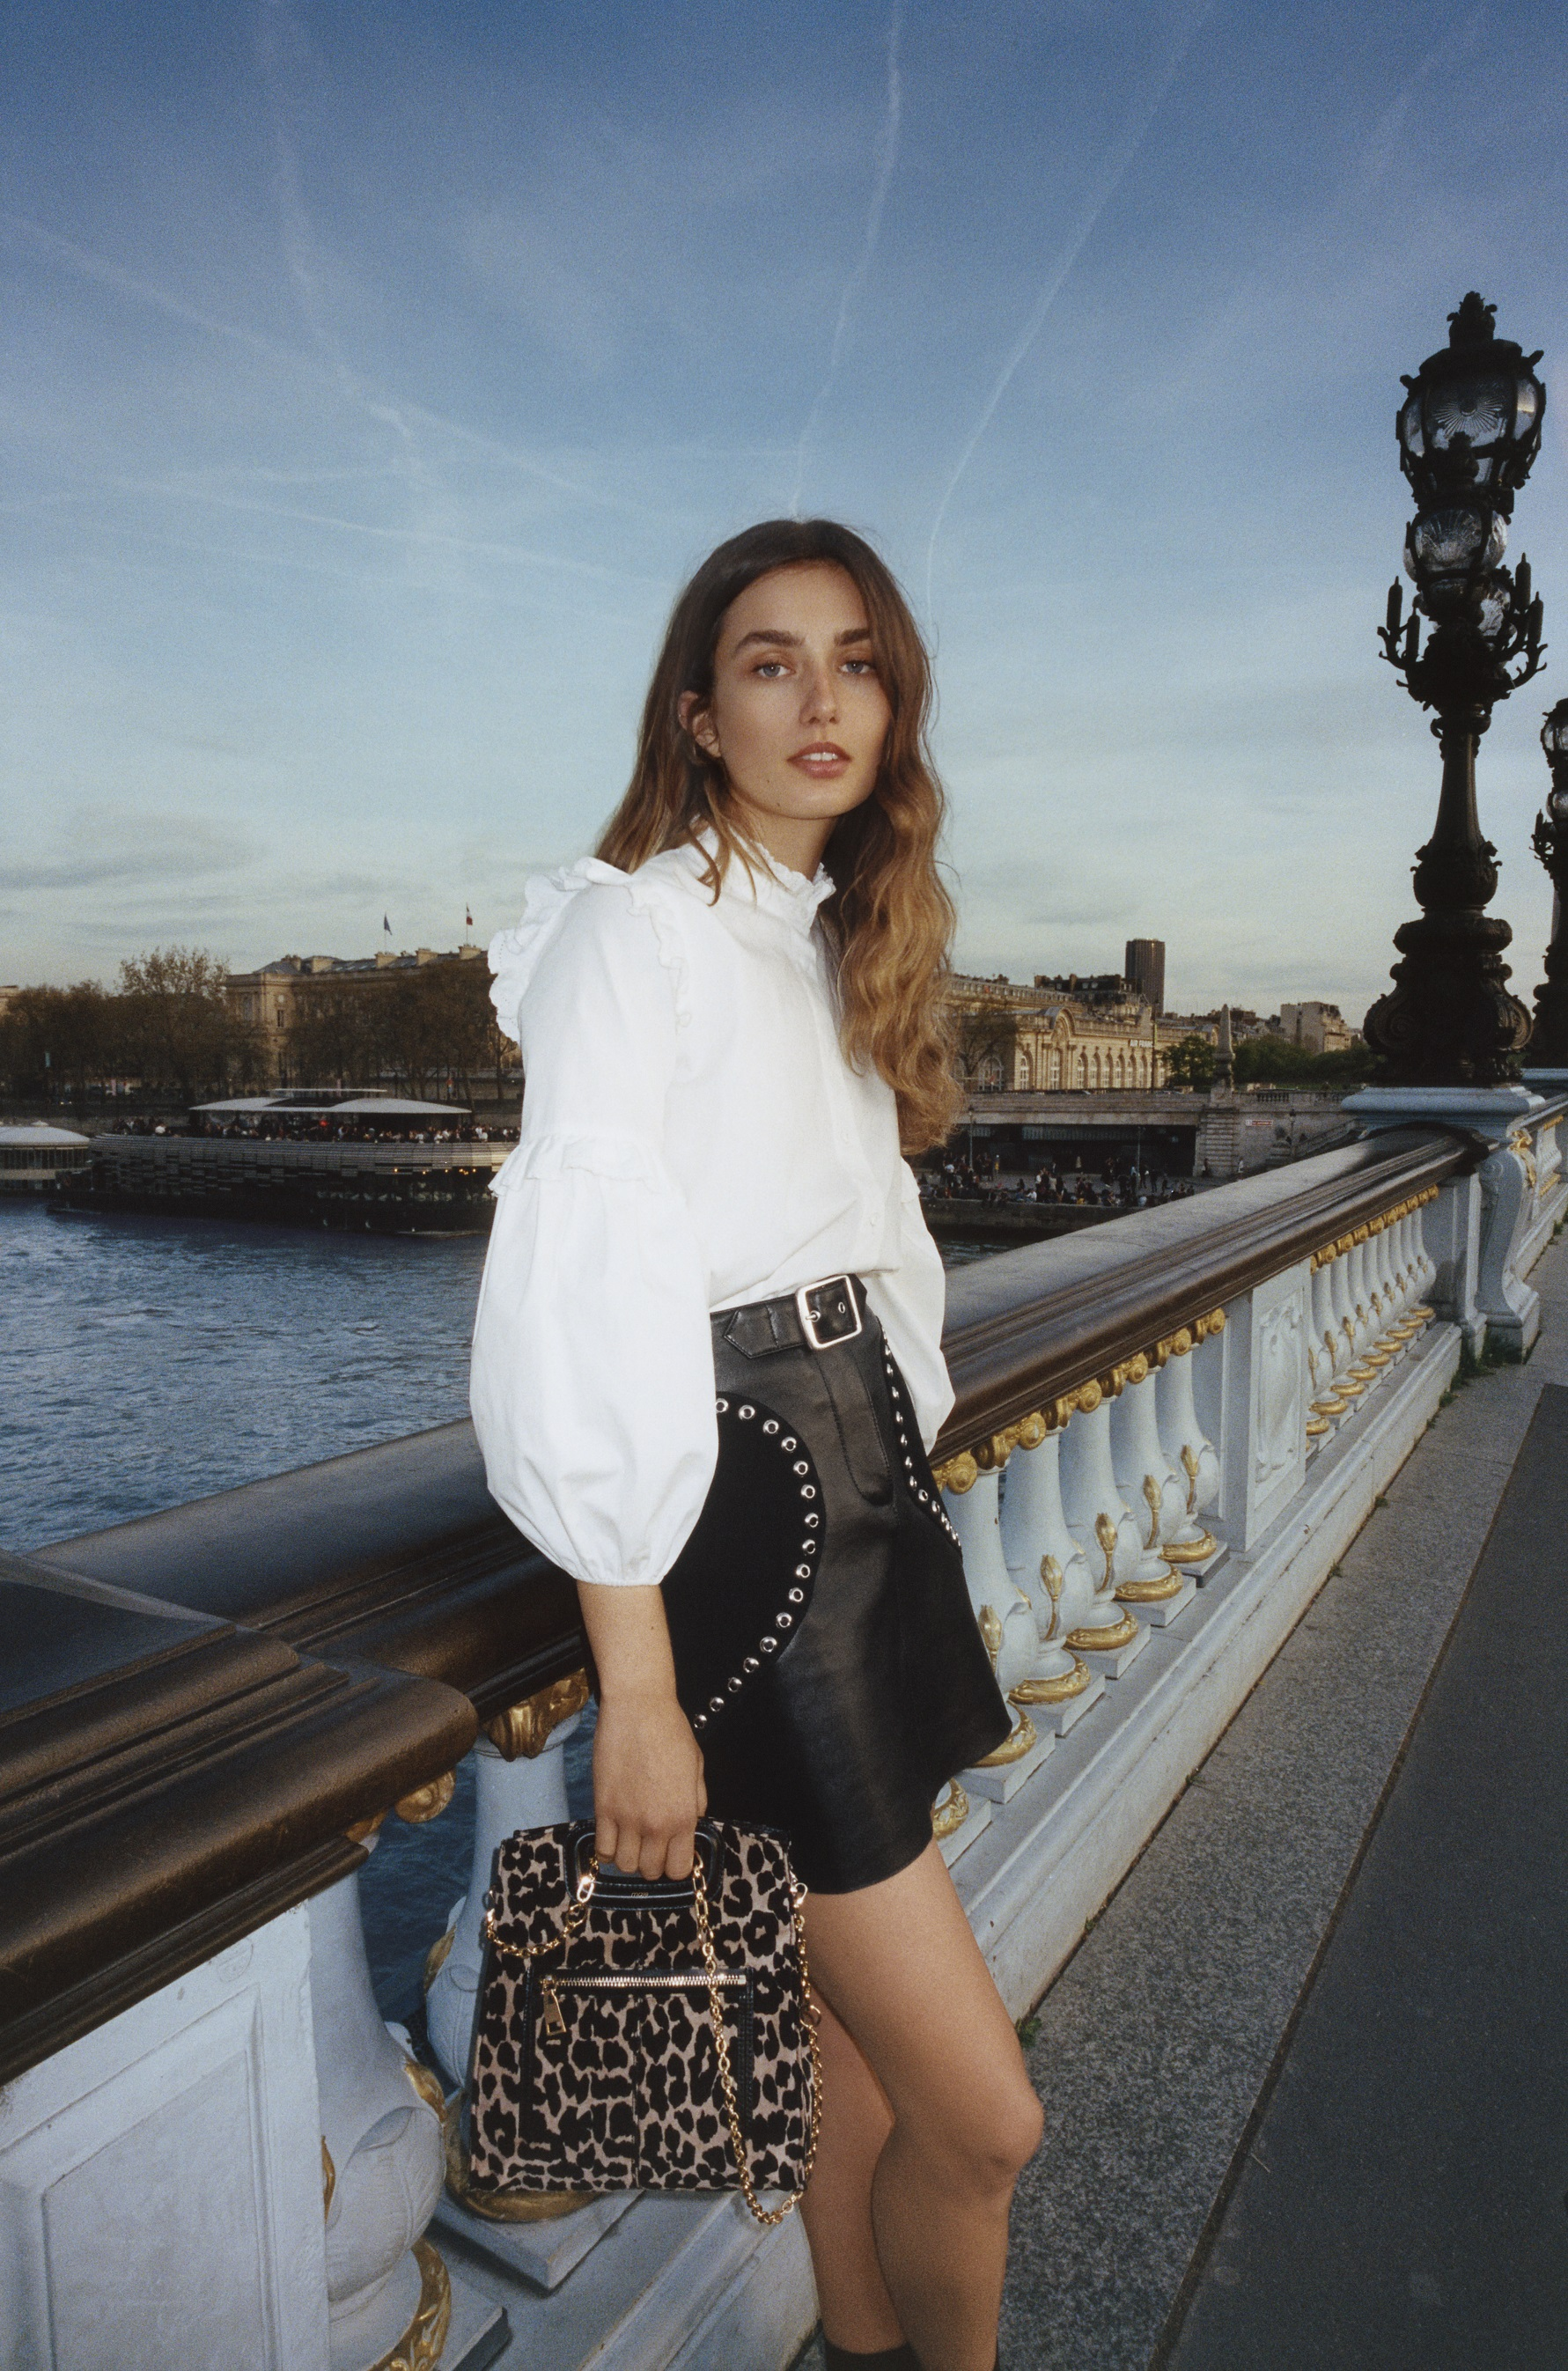 Model Andreea Diaconu Is Stunning Sans Makeup in Maje's Fall Ad Campaign